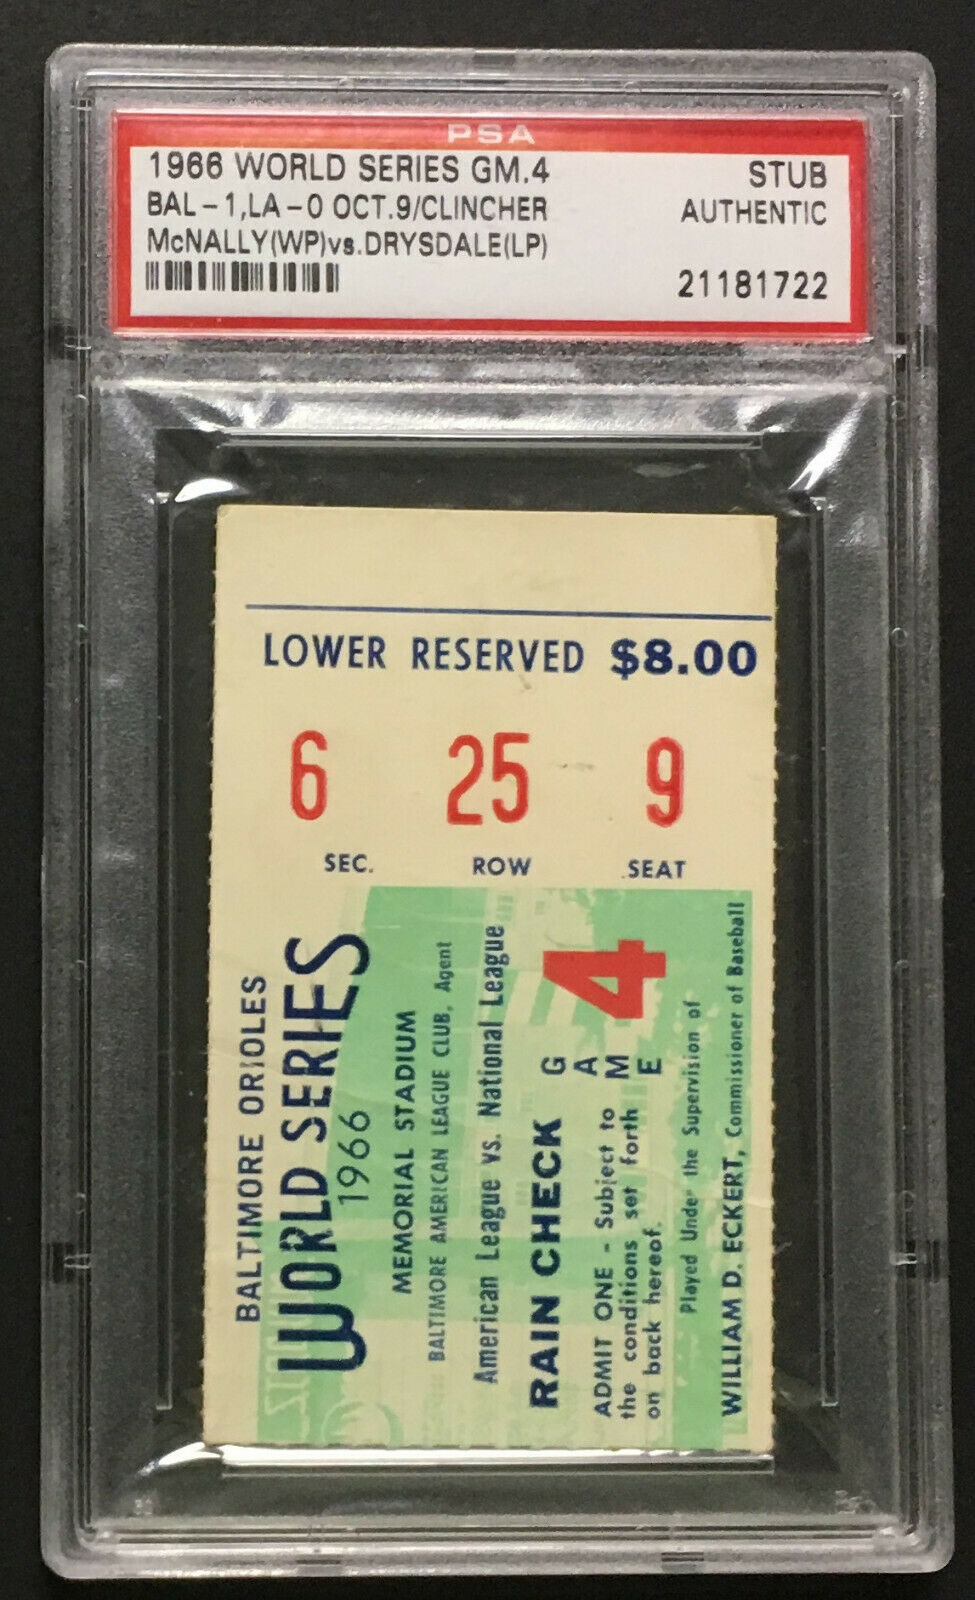 1966 World Series Ticket Game 4 Stub PSA Authentic Baltimore Orioles LA Dodgers